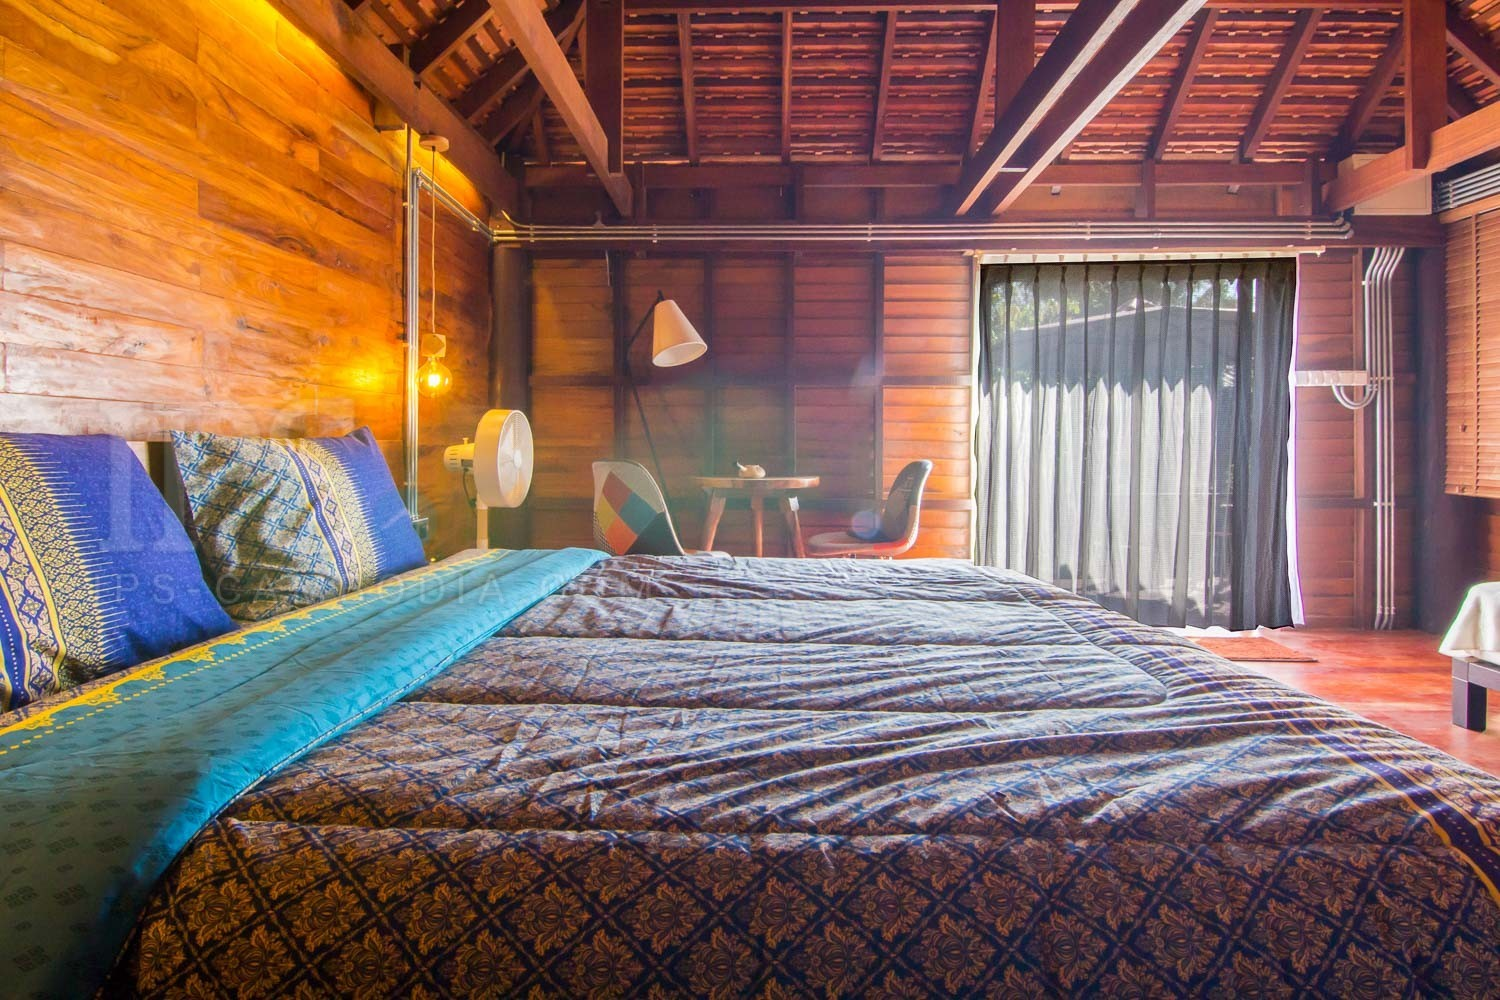 1 Bedroom Wooden Villa For Rent - Chreav, Siem Reap